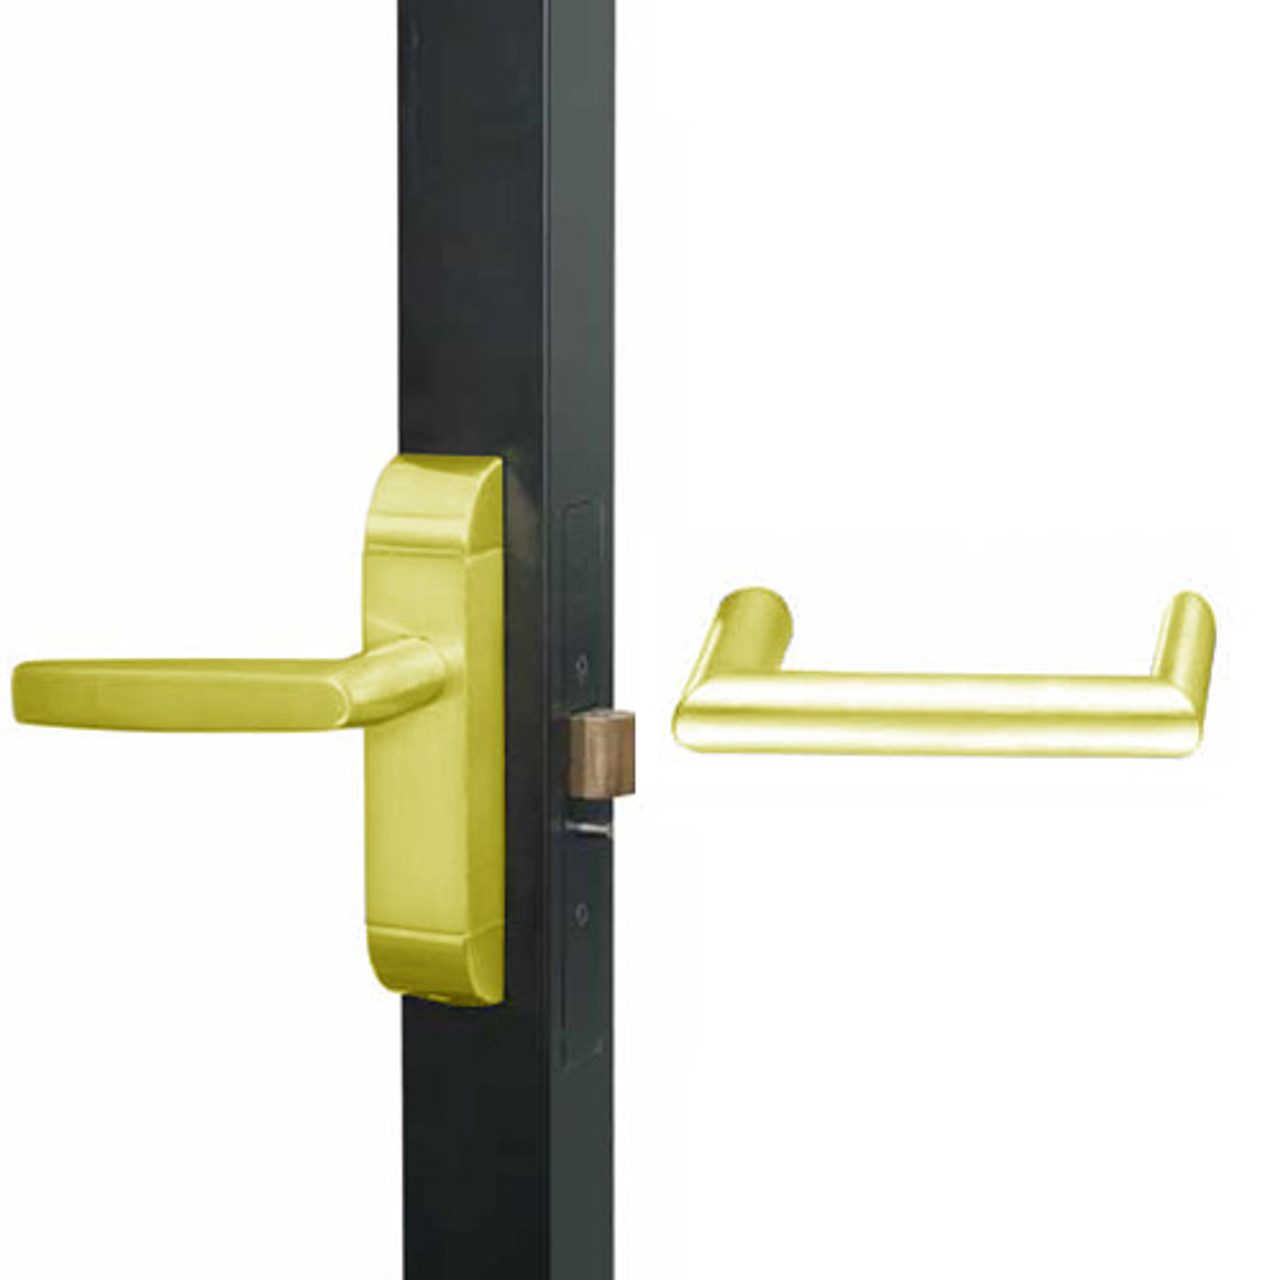 4600M-MW-621-US3 Adams Rite MW Designer Deadlatch handle in Bright Brass Finish